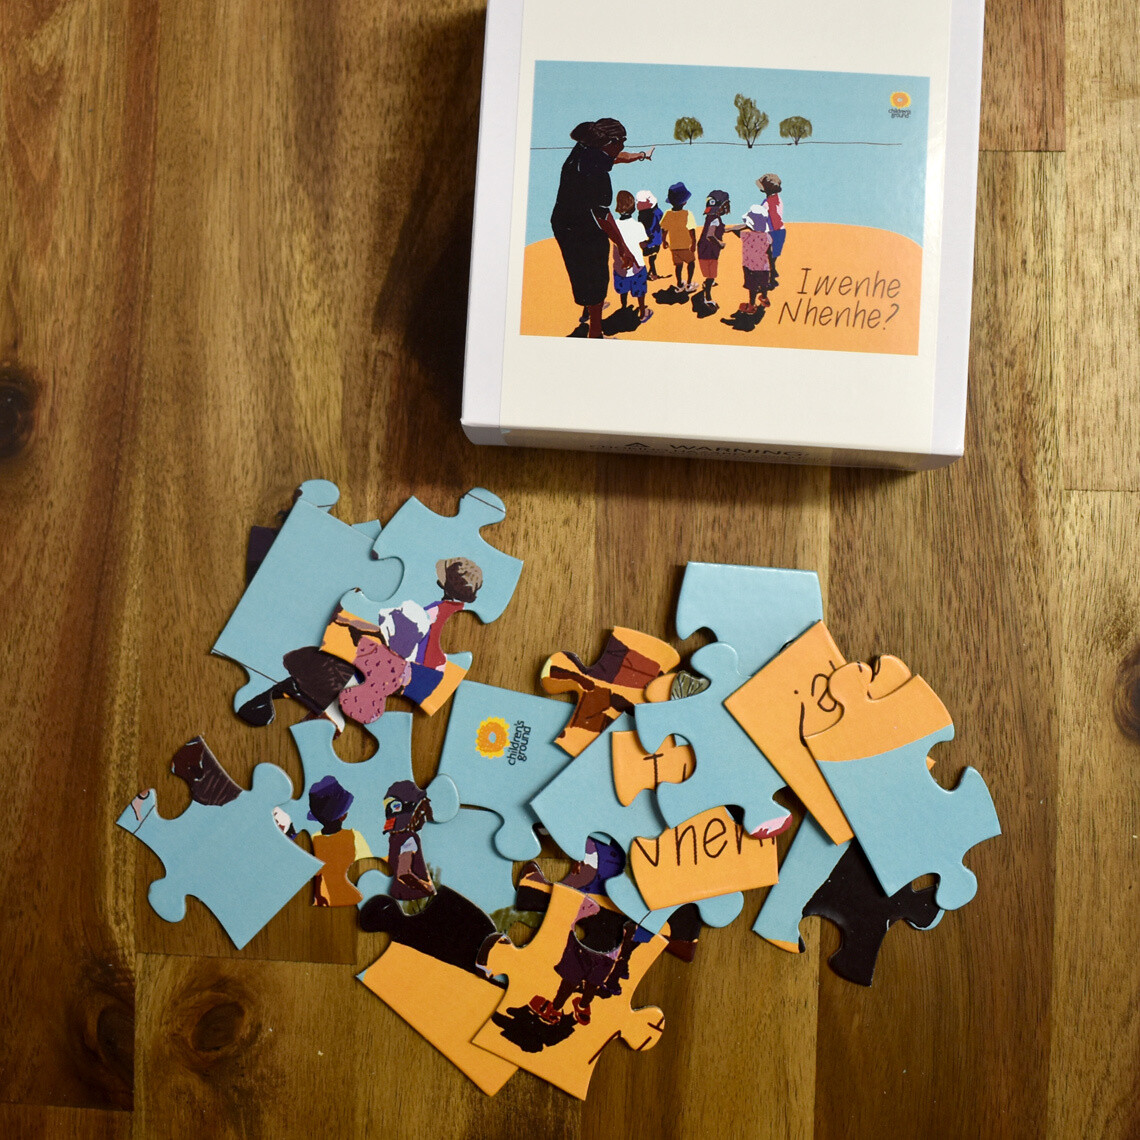 Iwenhe Nhene (What's This?) Jigsaw Puzzle